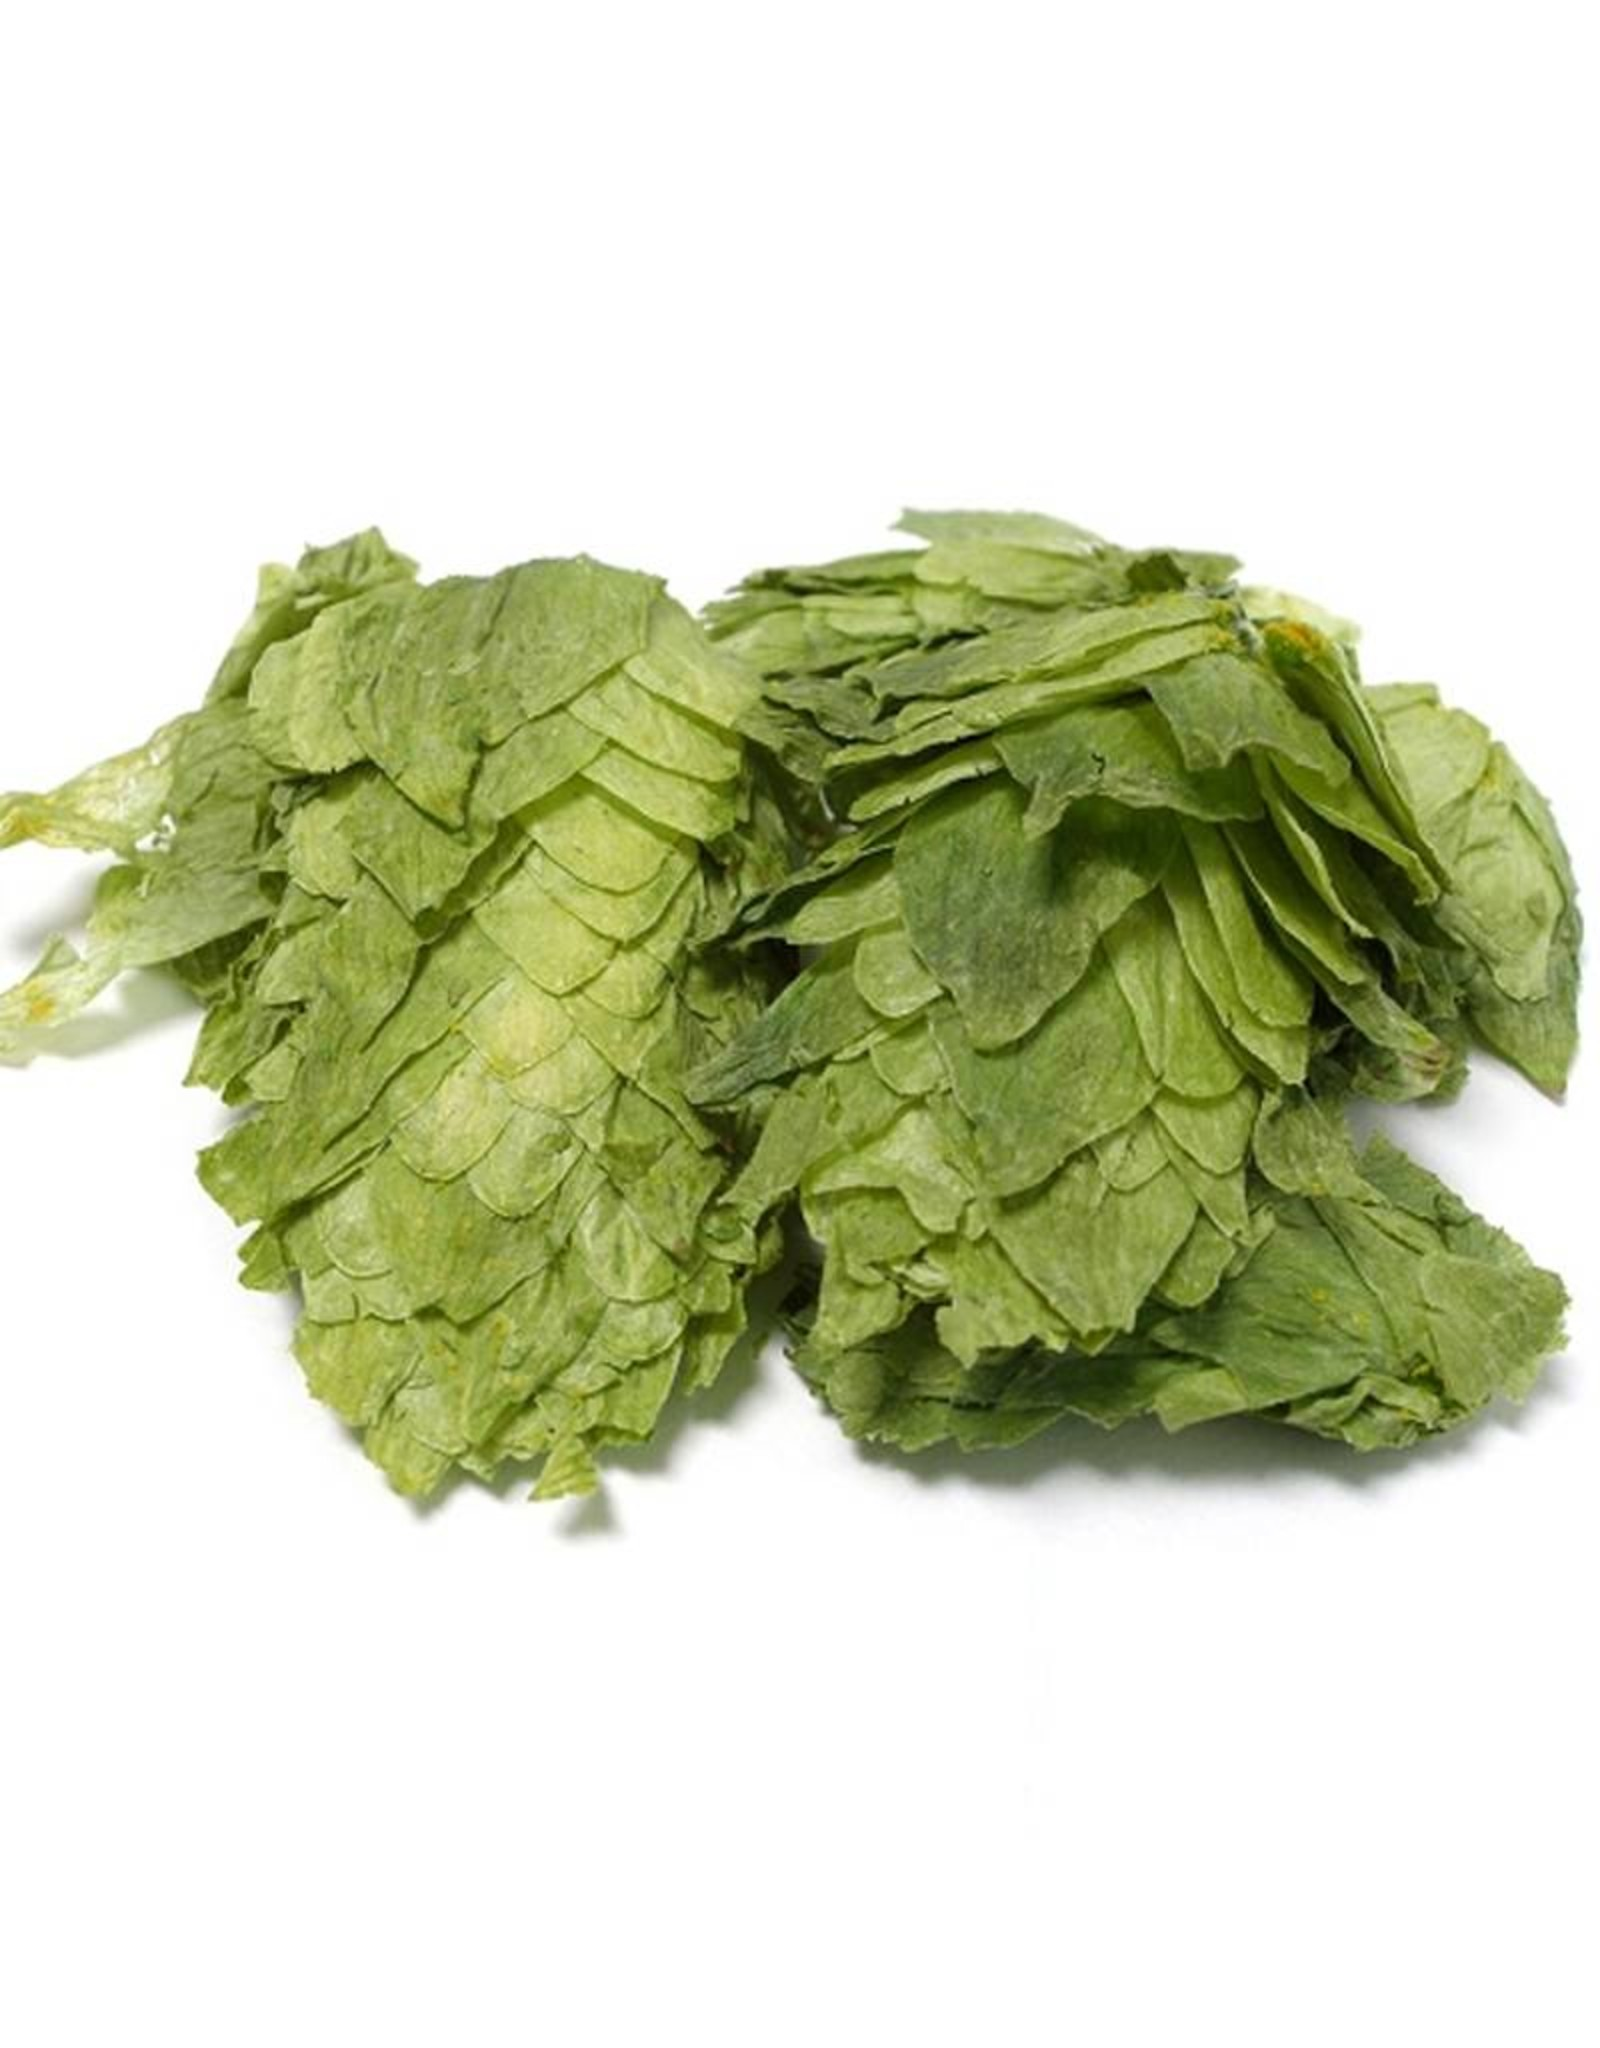 Simcoe - Leaf Hops (1lb)